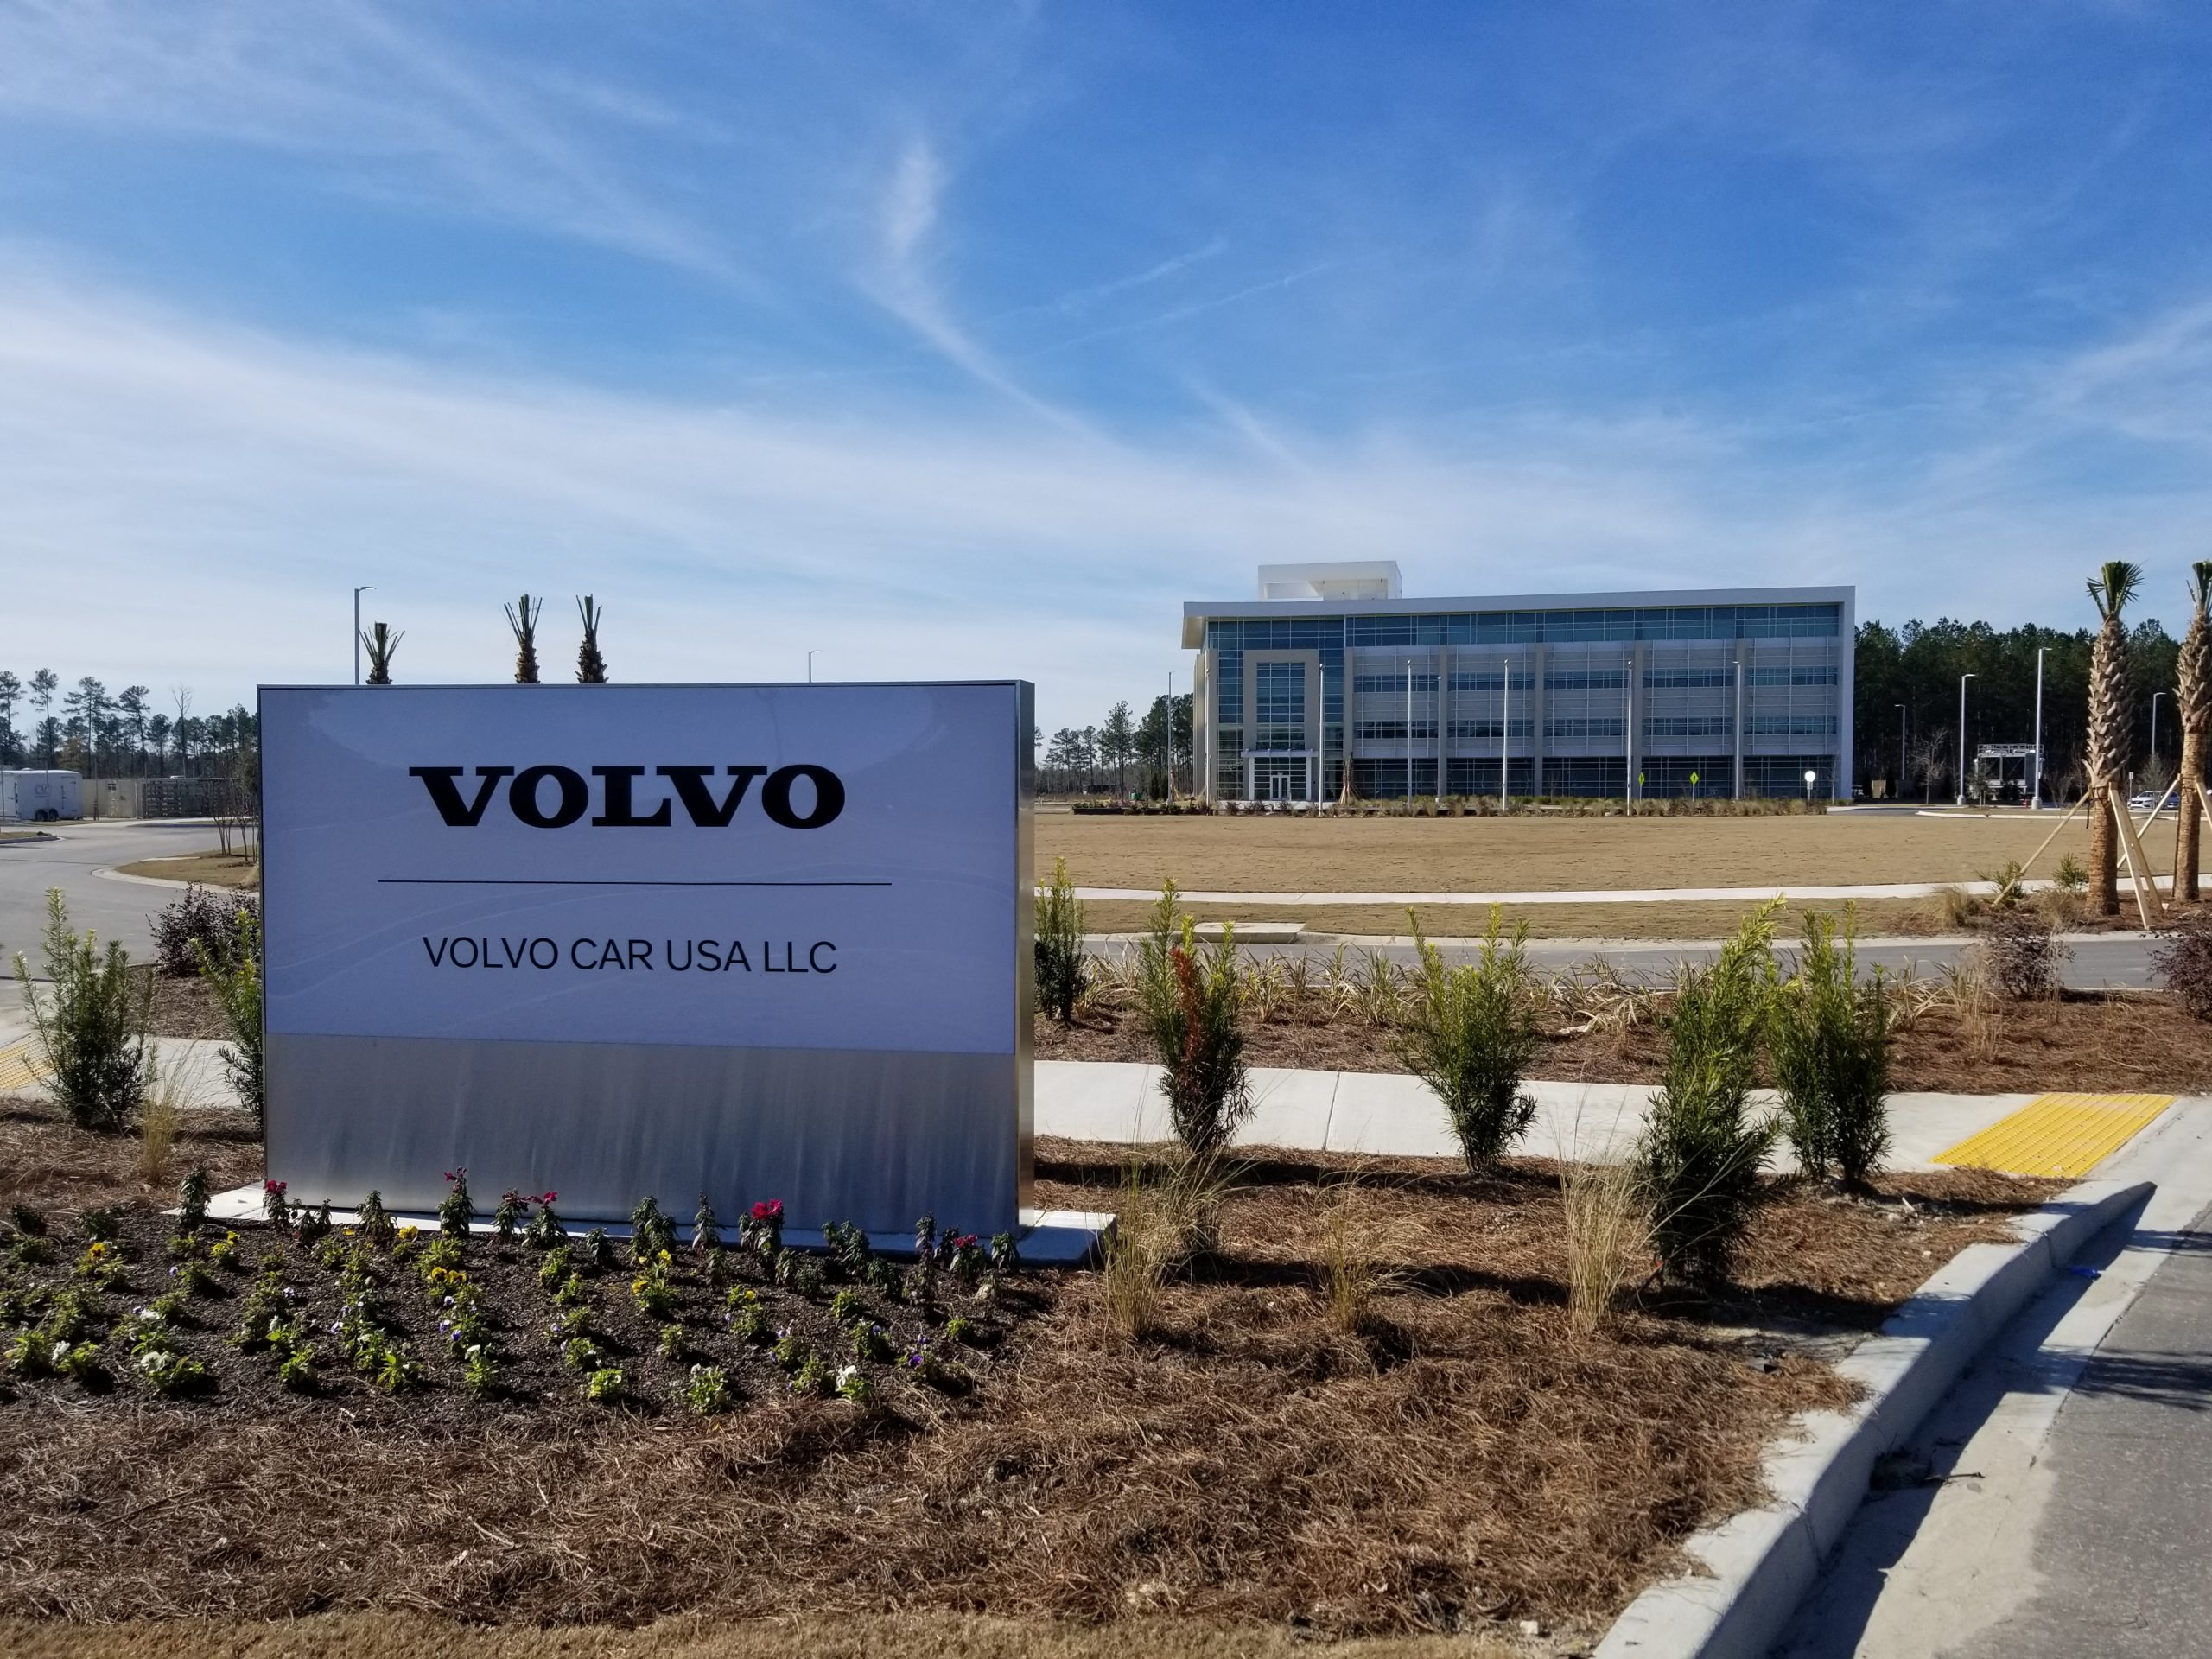 Volvo Usa Hq Training Center Acousti Engineering Company Of Florida